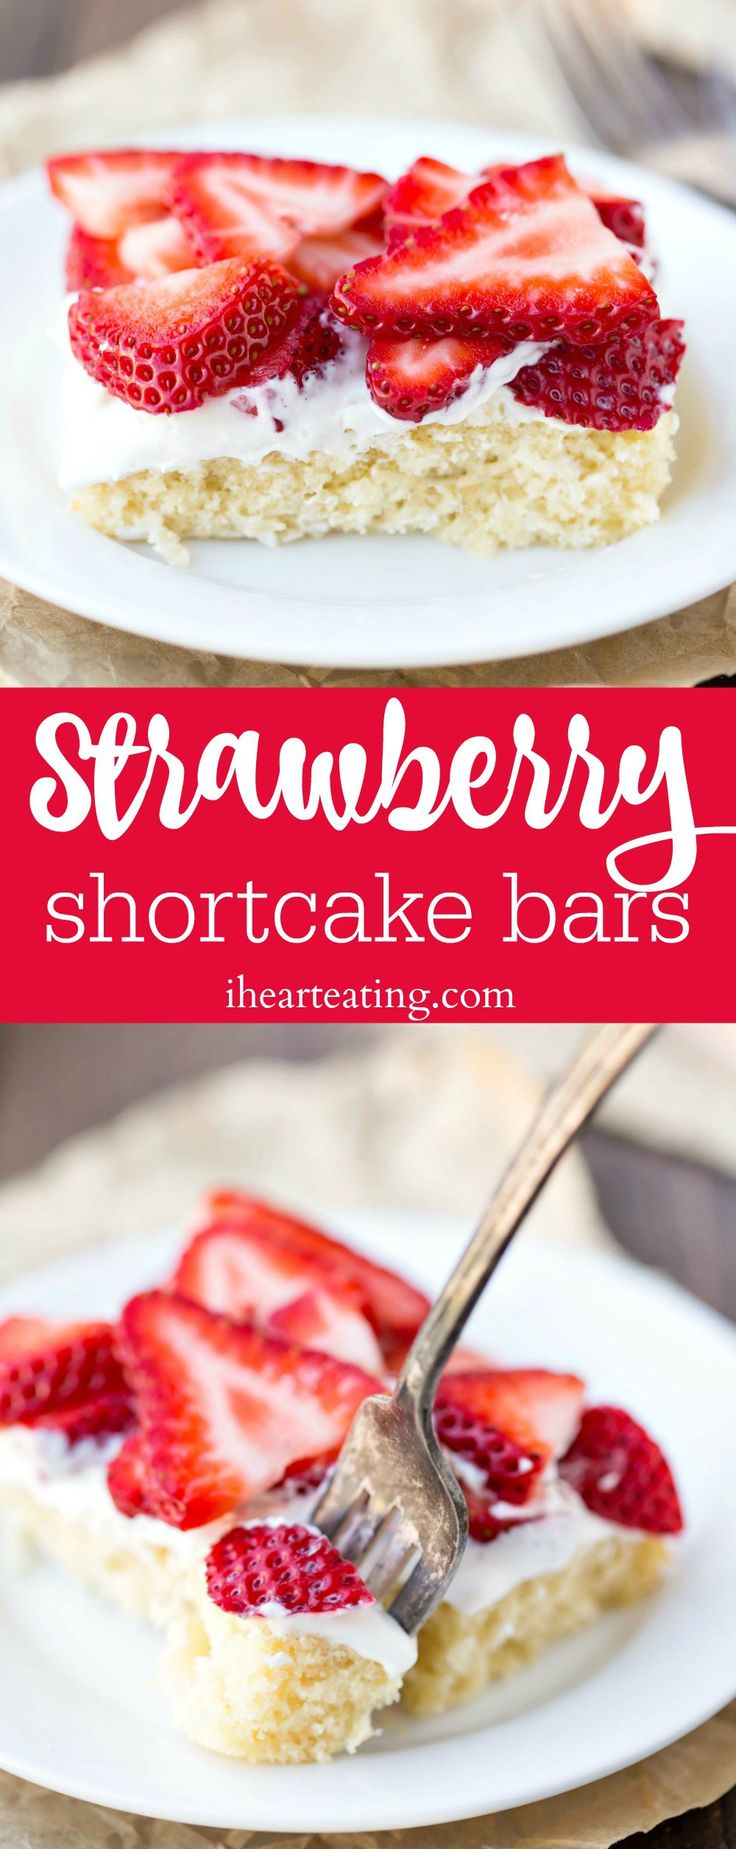 Strawberry Shortcake Bars Recipe - shortbread cake crust topped with whipped cream and strawberries for the ultimate spring dessert!